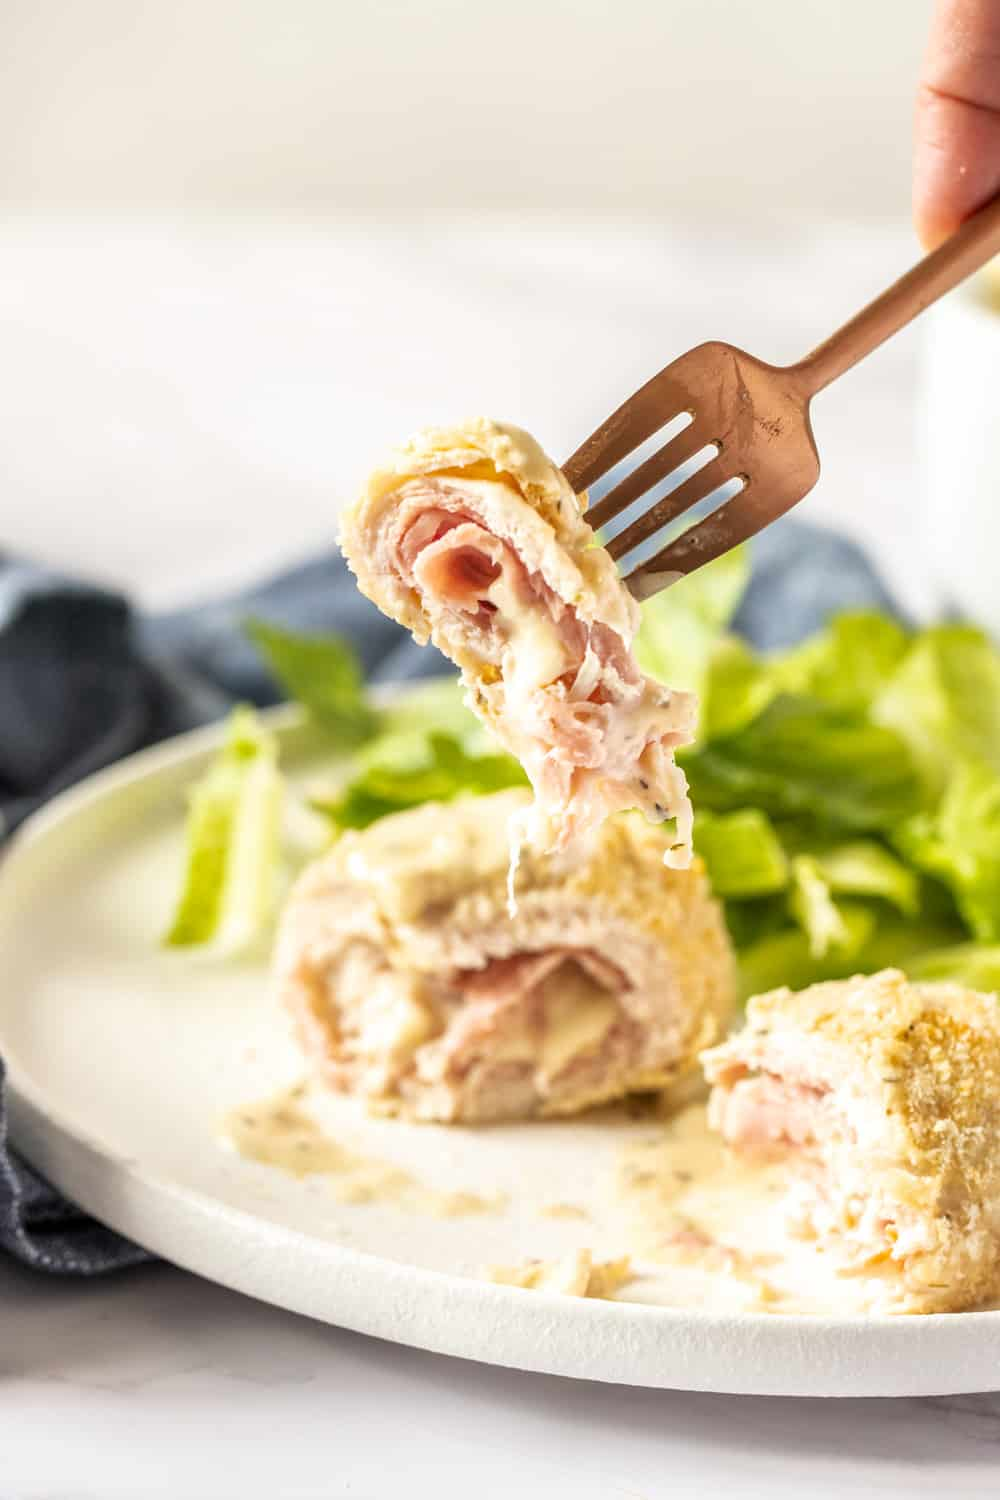 Chicken cordon bleu on a fork showing the inside layers.